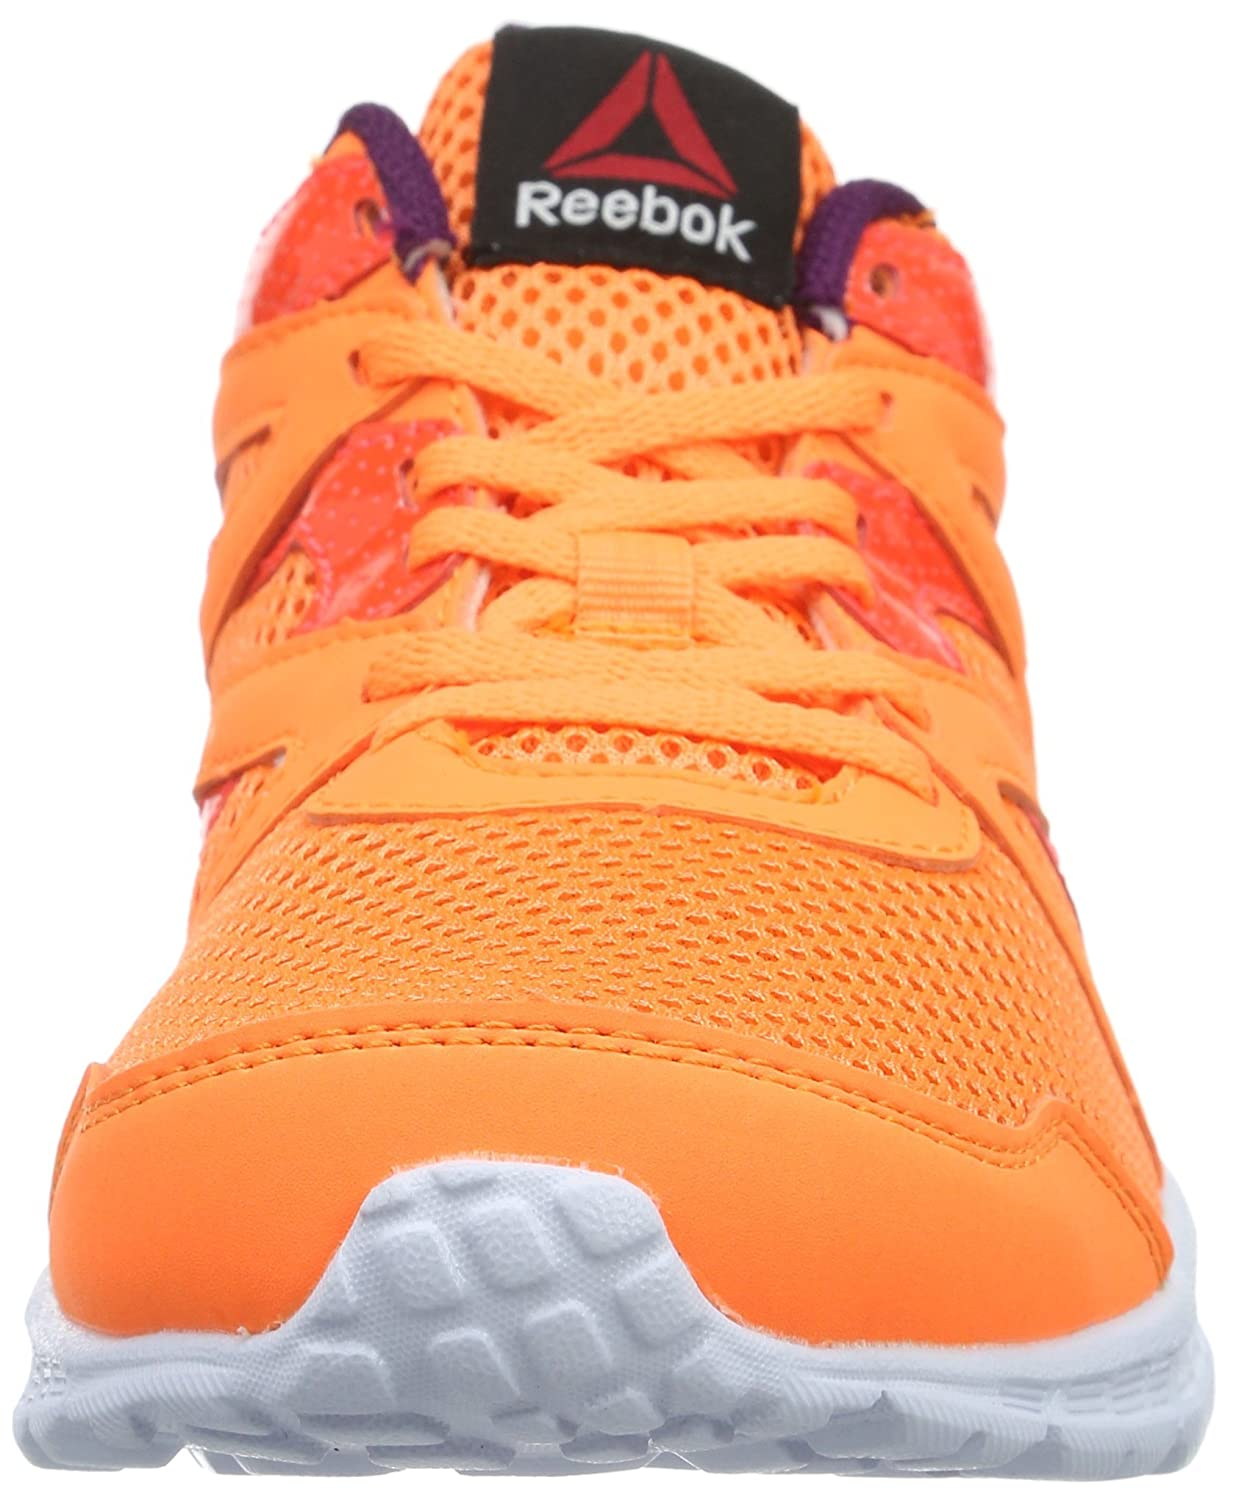 Amazon.com | Reebok Run Supreme 2.0 Womens Running Shoes Orange, Sizes:EU/37.5 - UK/4.5 - US/7 | Shoes